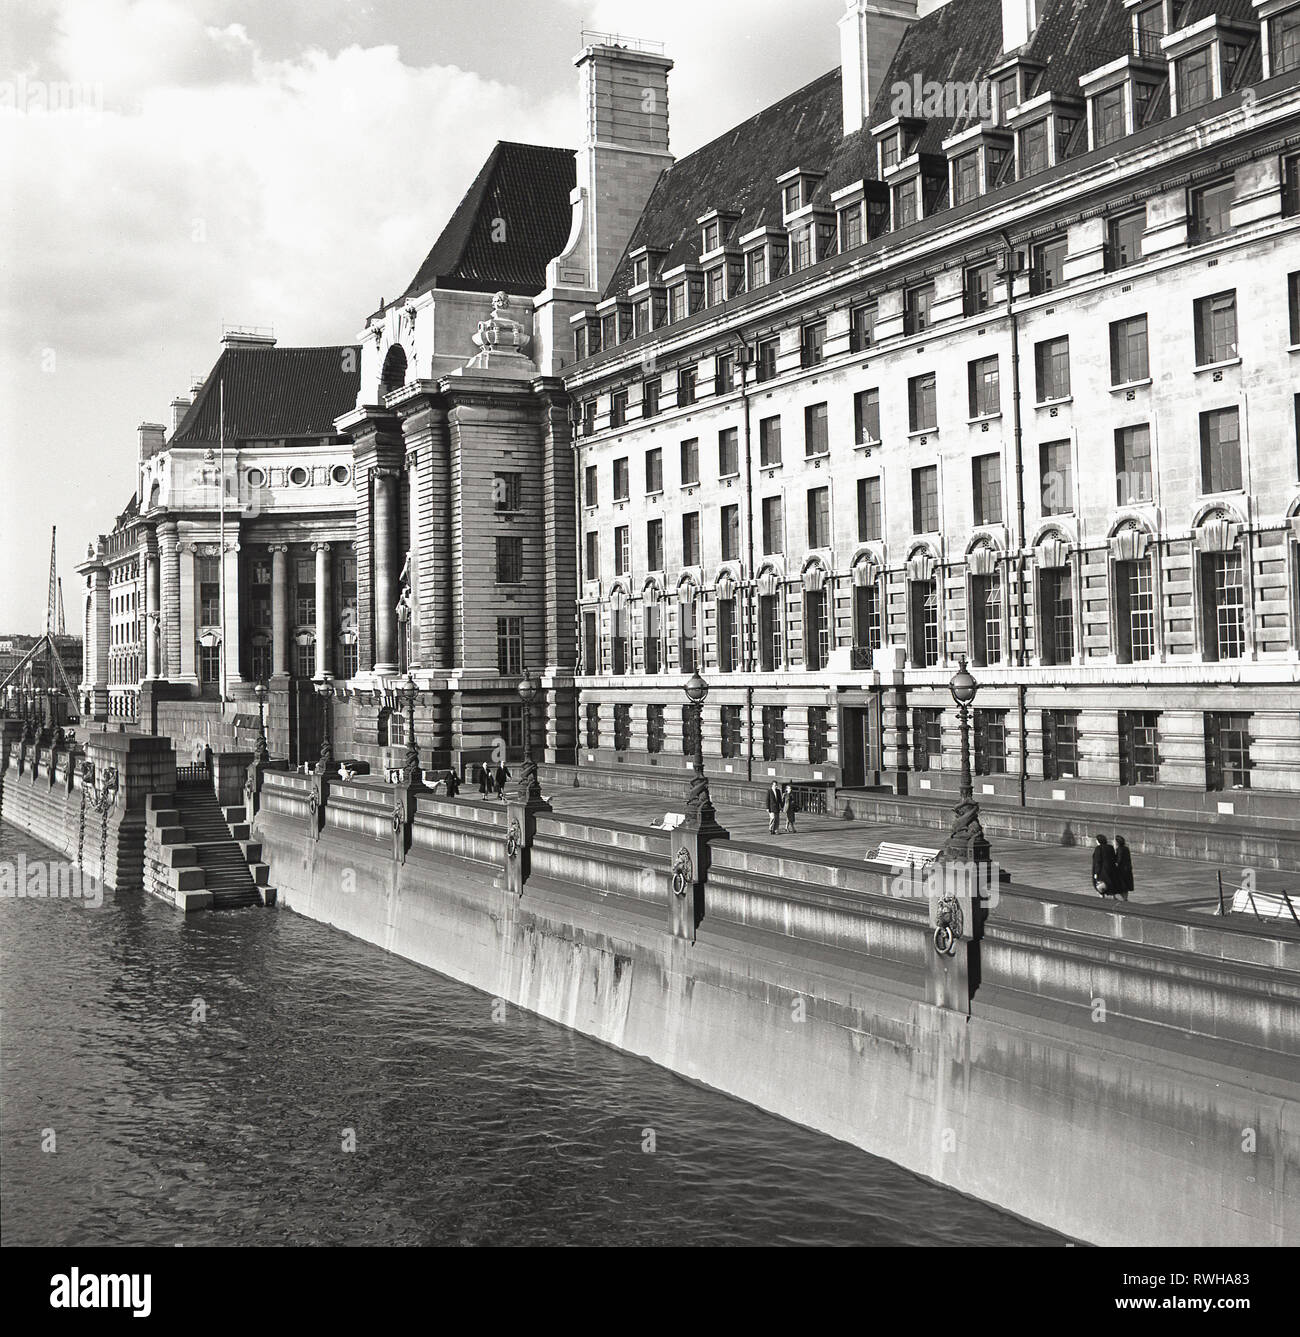 1950s, view from Westminster Bridge of County Hall, overlooking the river Thames, on the South Bank of London. At this time the offices of the LLC, the 'London County Council' and then from 1965, the GLC,,'Greater London Council'. The LCC was the principal local government body for the county of London and was the largest and most progressive English municipal authority of its day. - Stock Image